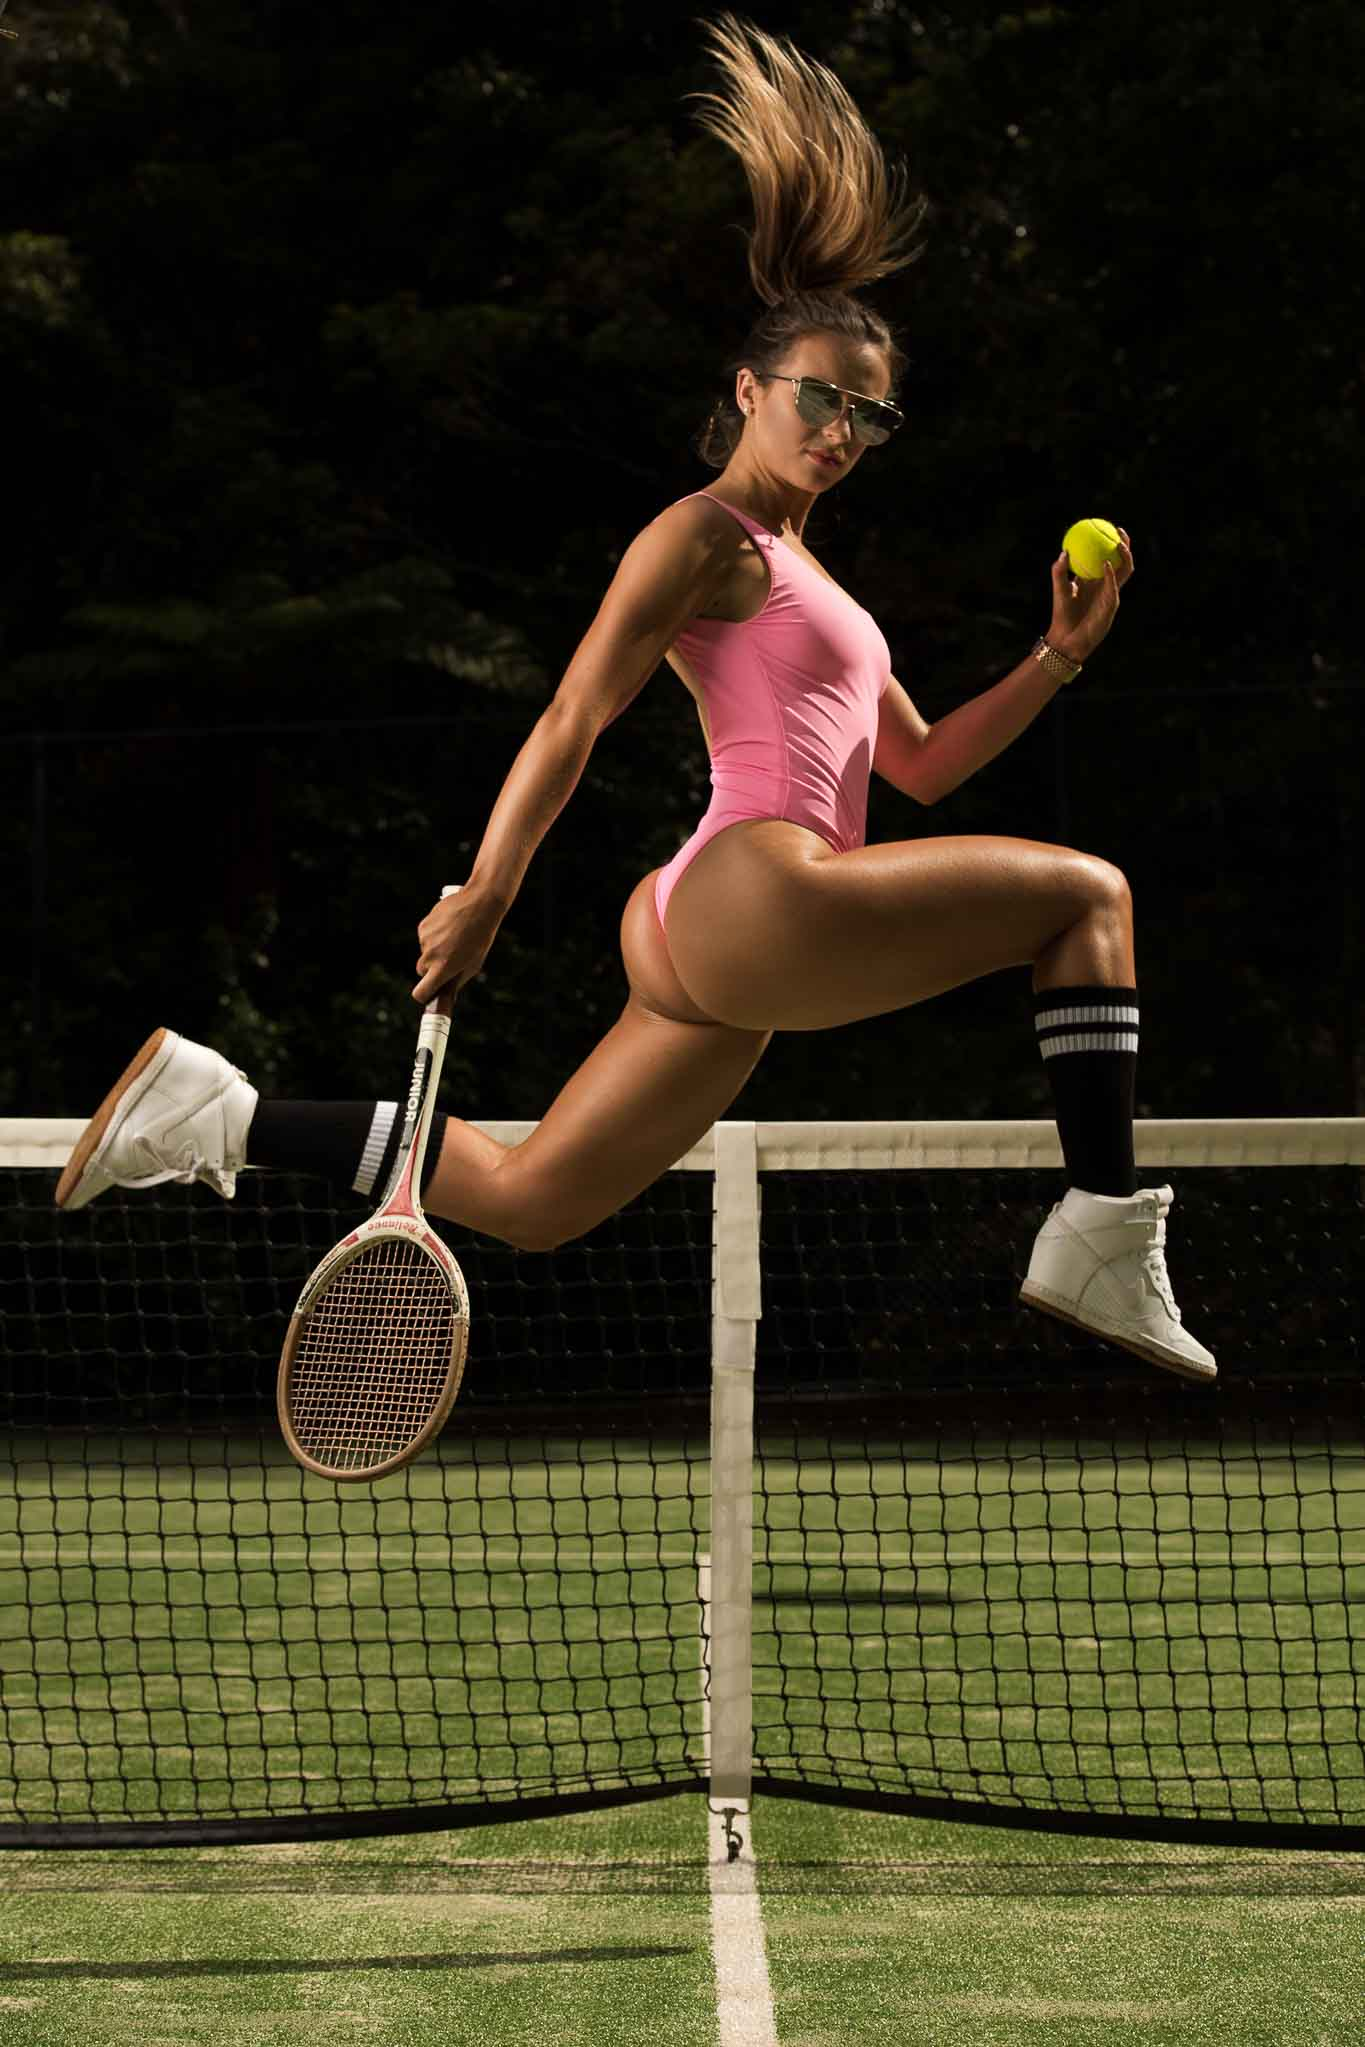 Maya Jumping on tennis court wearing high black socks and full one piece pink swimsuit